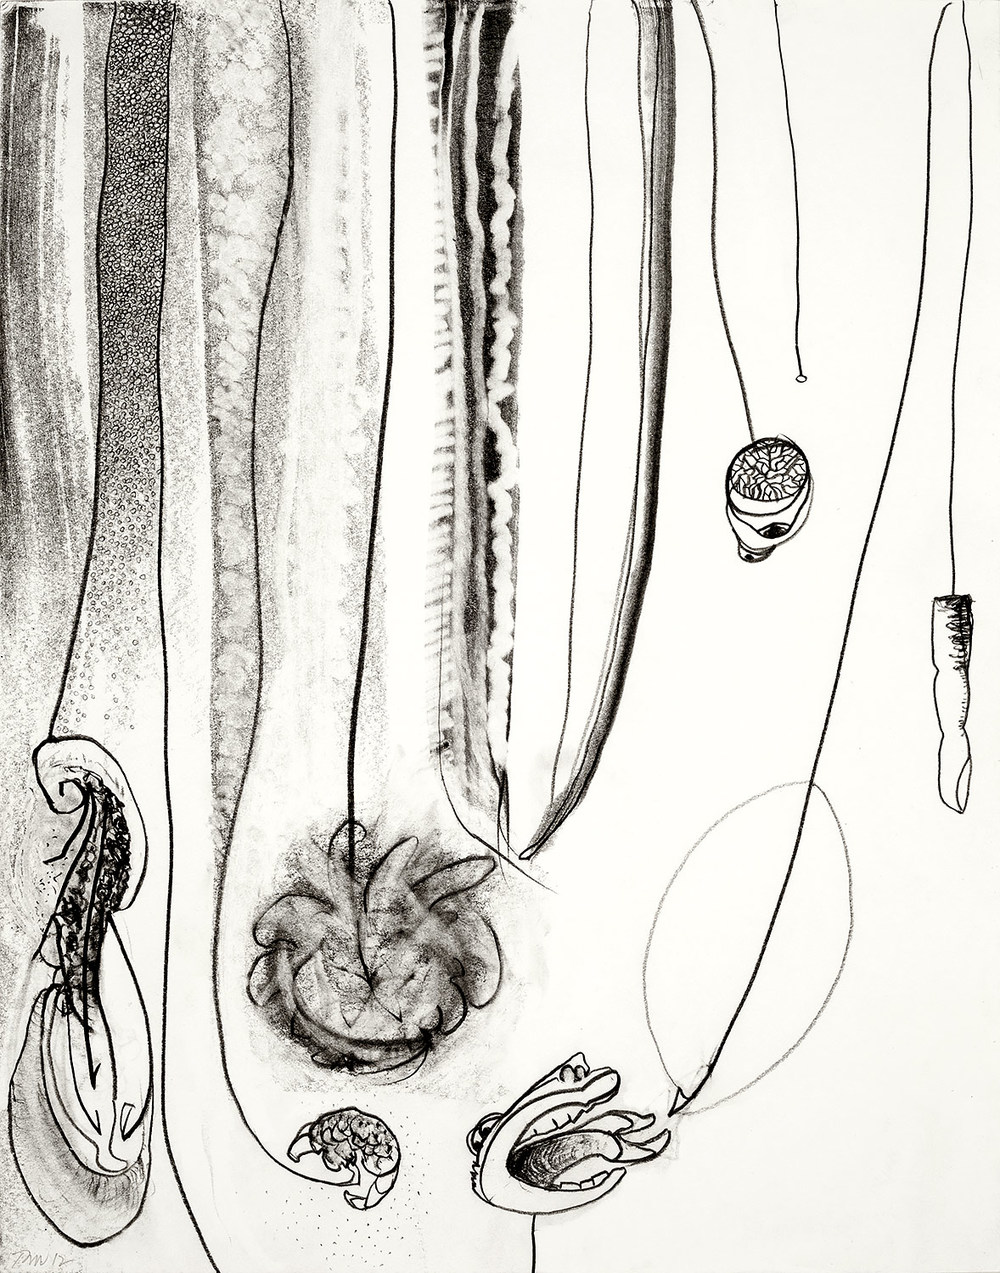 """Brian Wood <br> """"Shell Game"""" <br> Graphite on paper <br> 14 x 11 in."""